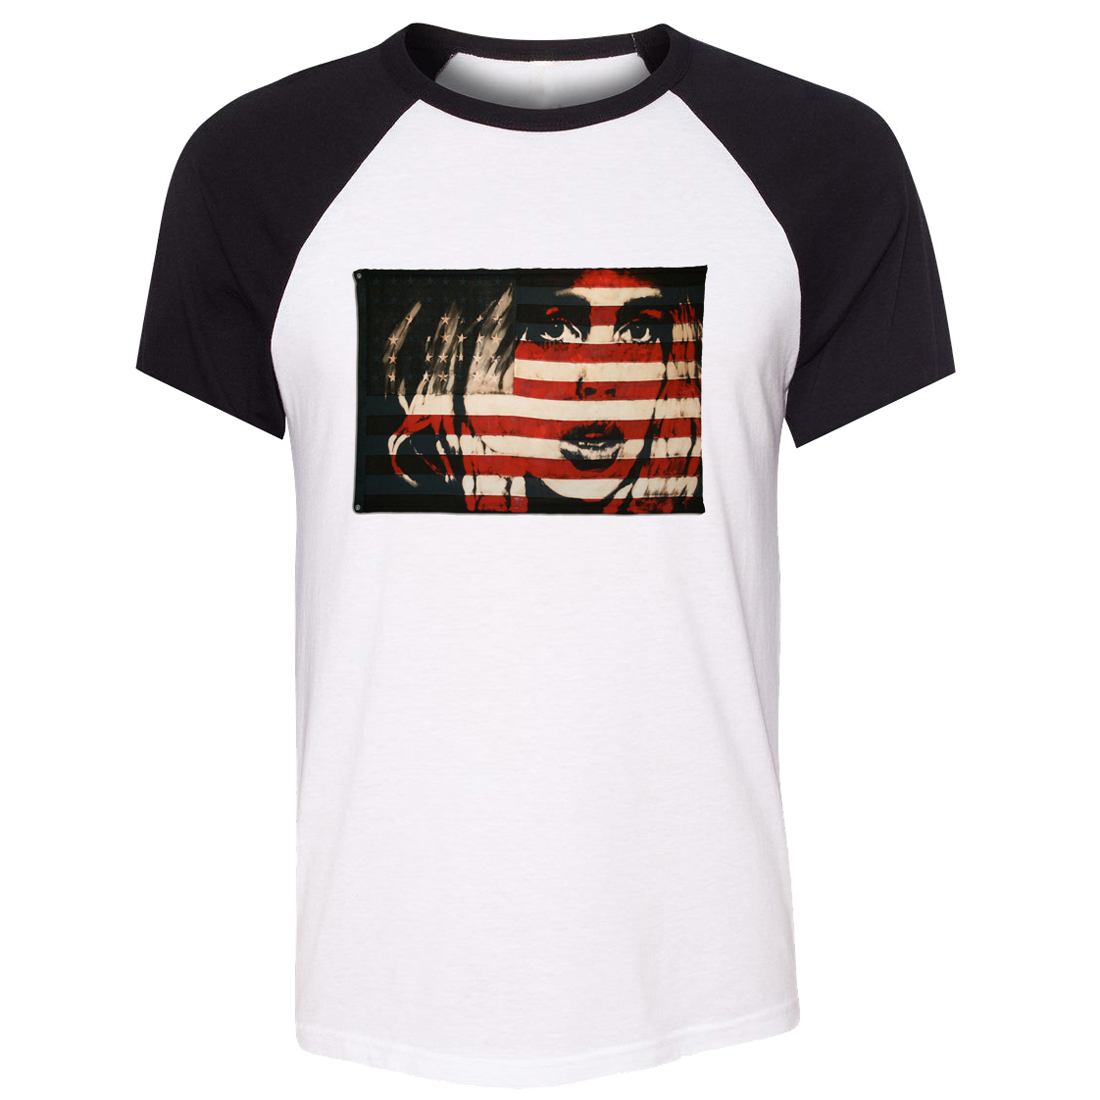 Design your own t shirt made in usa - Idzn Unisex T Shirt American Flag Vintage Women Distressed Usa Flag American Patriotism Short Sleeve